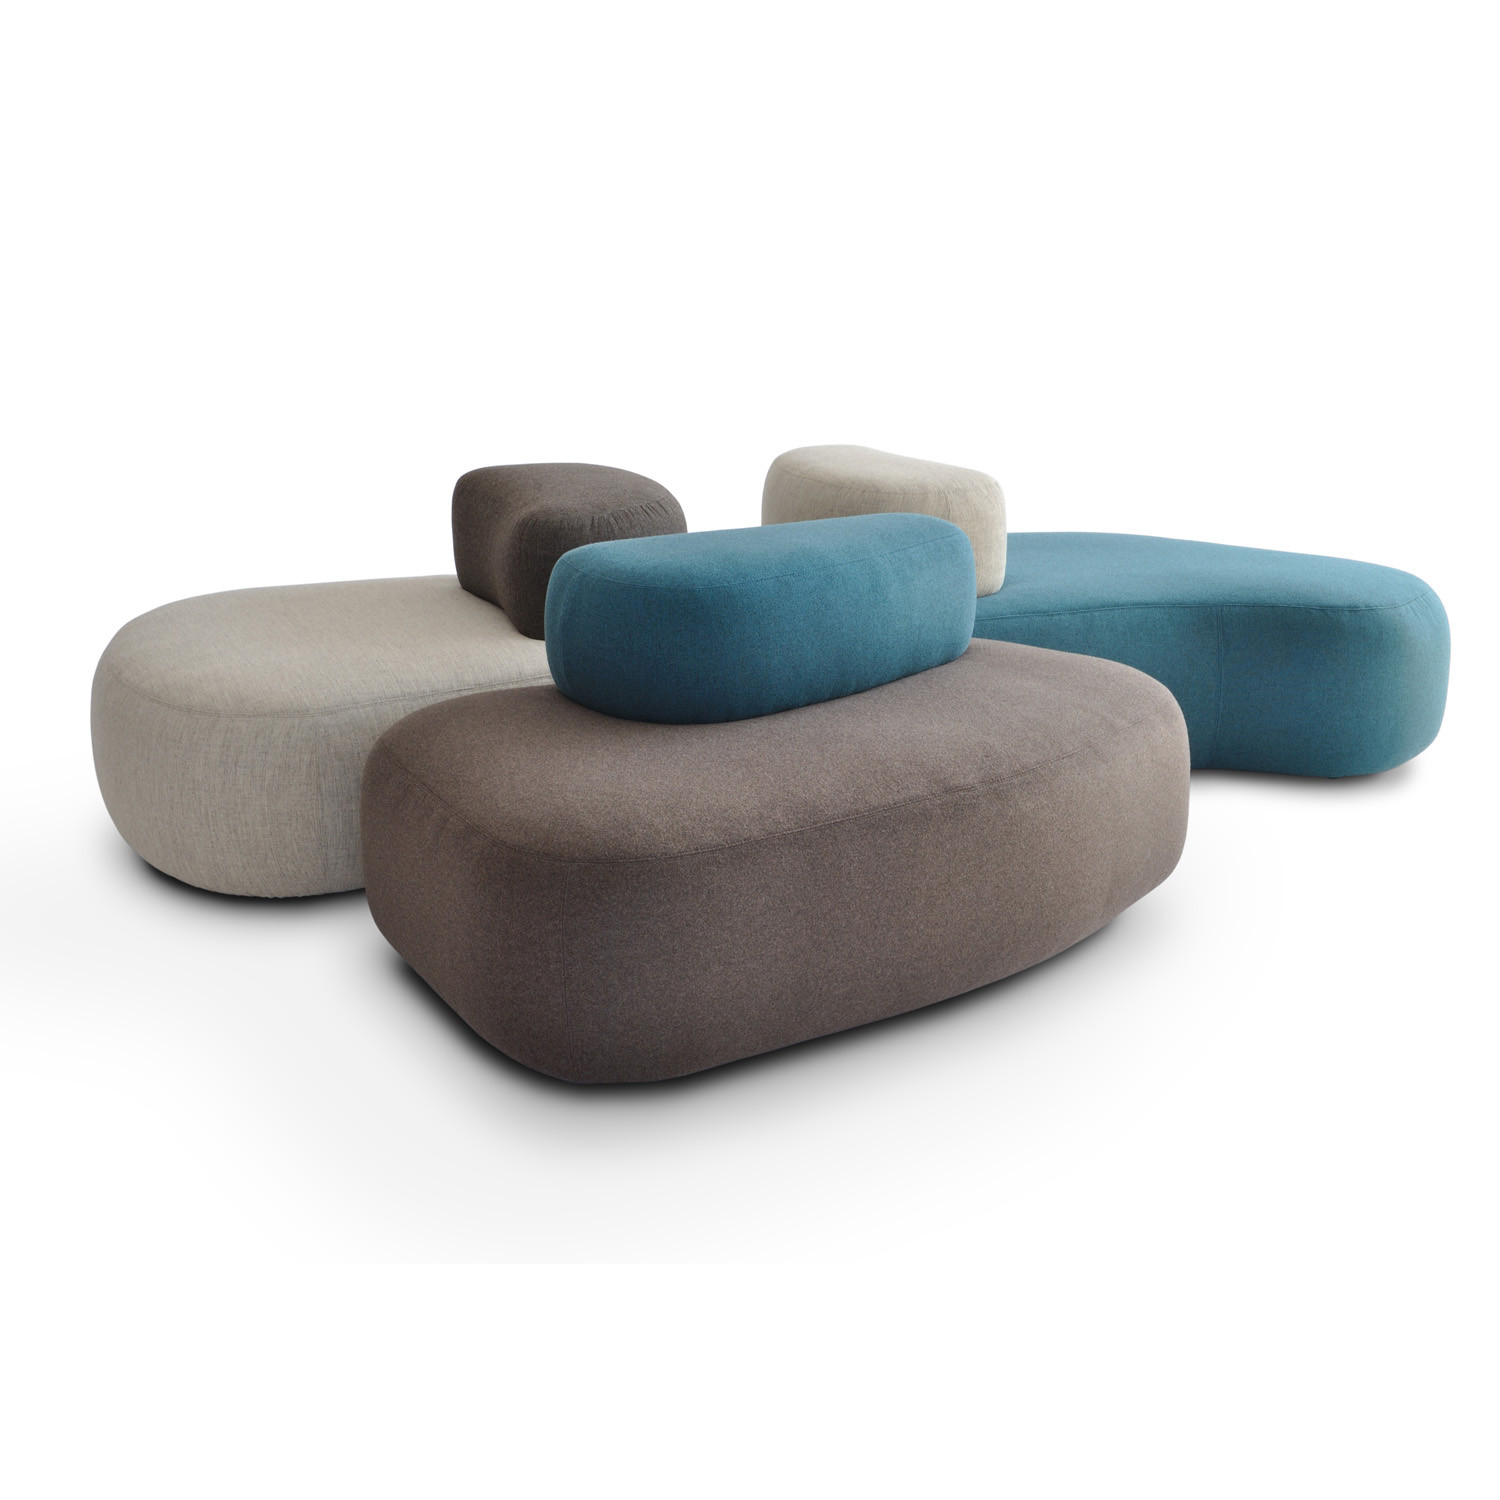 HM63 Organic Seating from Nigel Coates